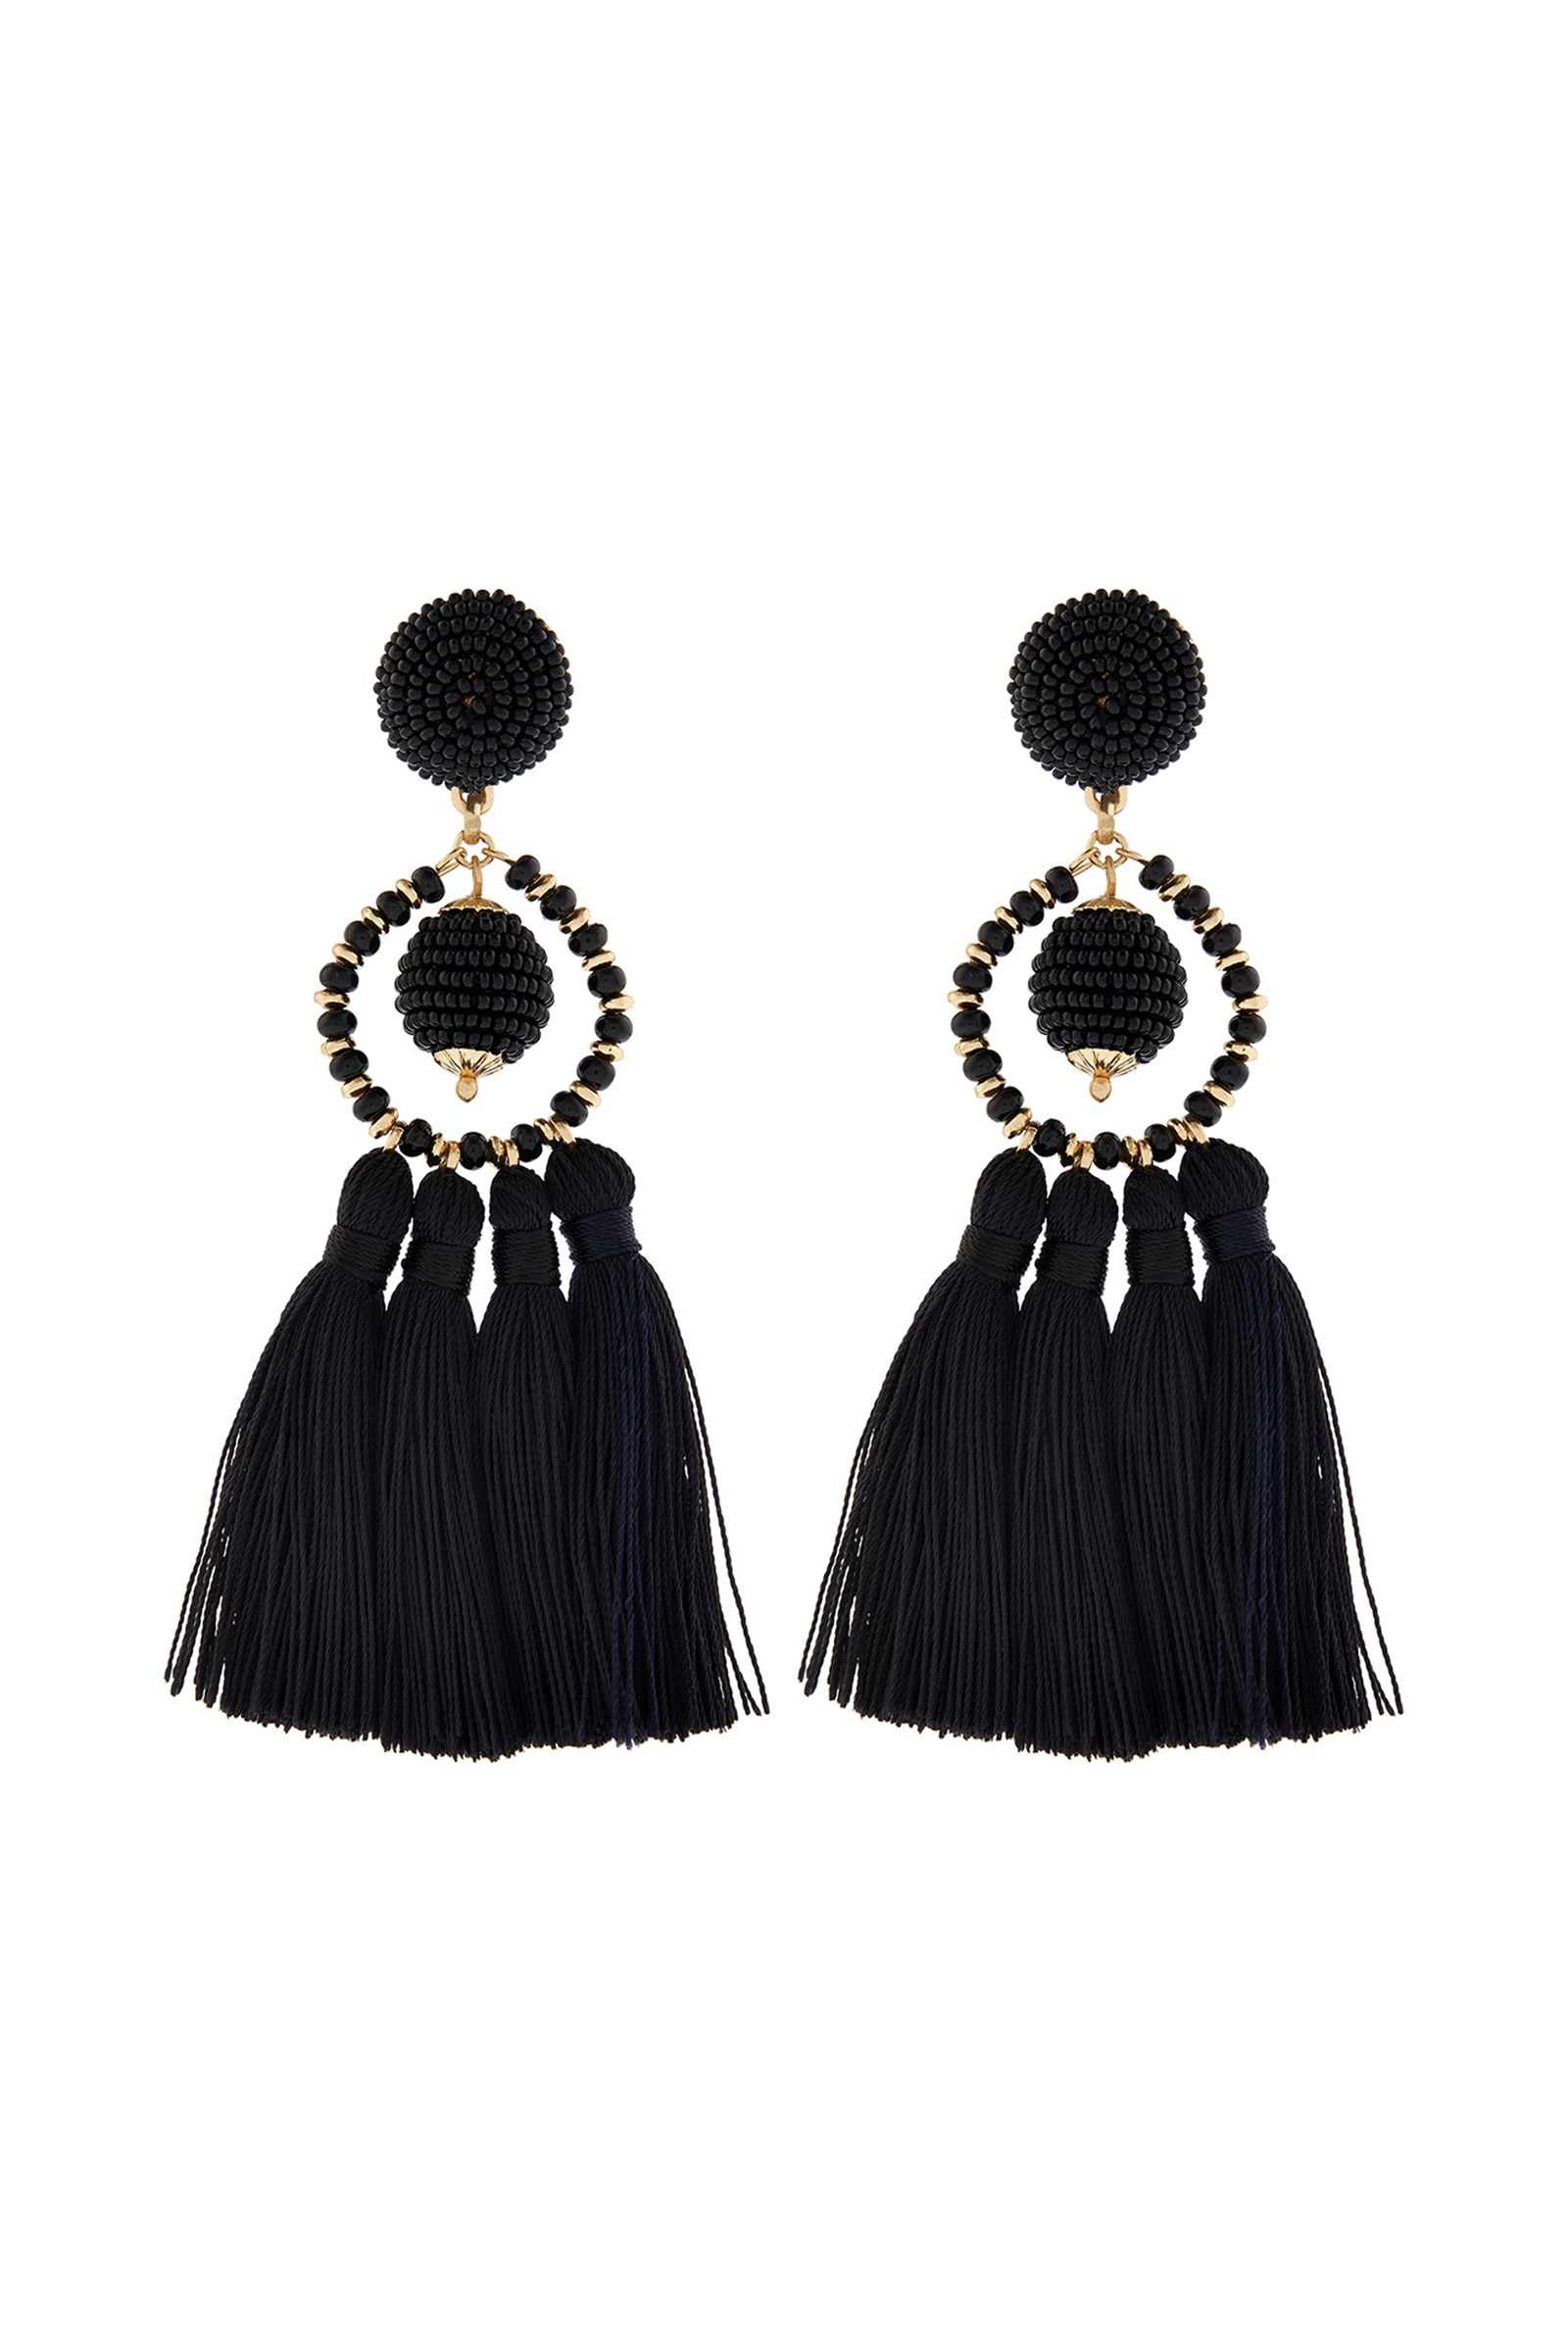 Click to Buy Accessorize Black Tassel Earrings